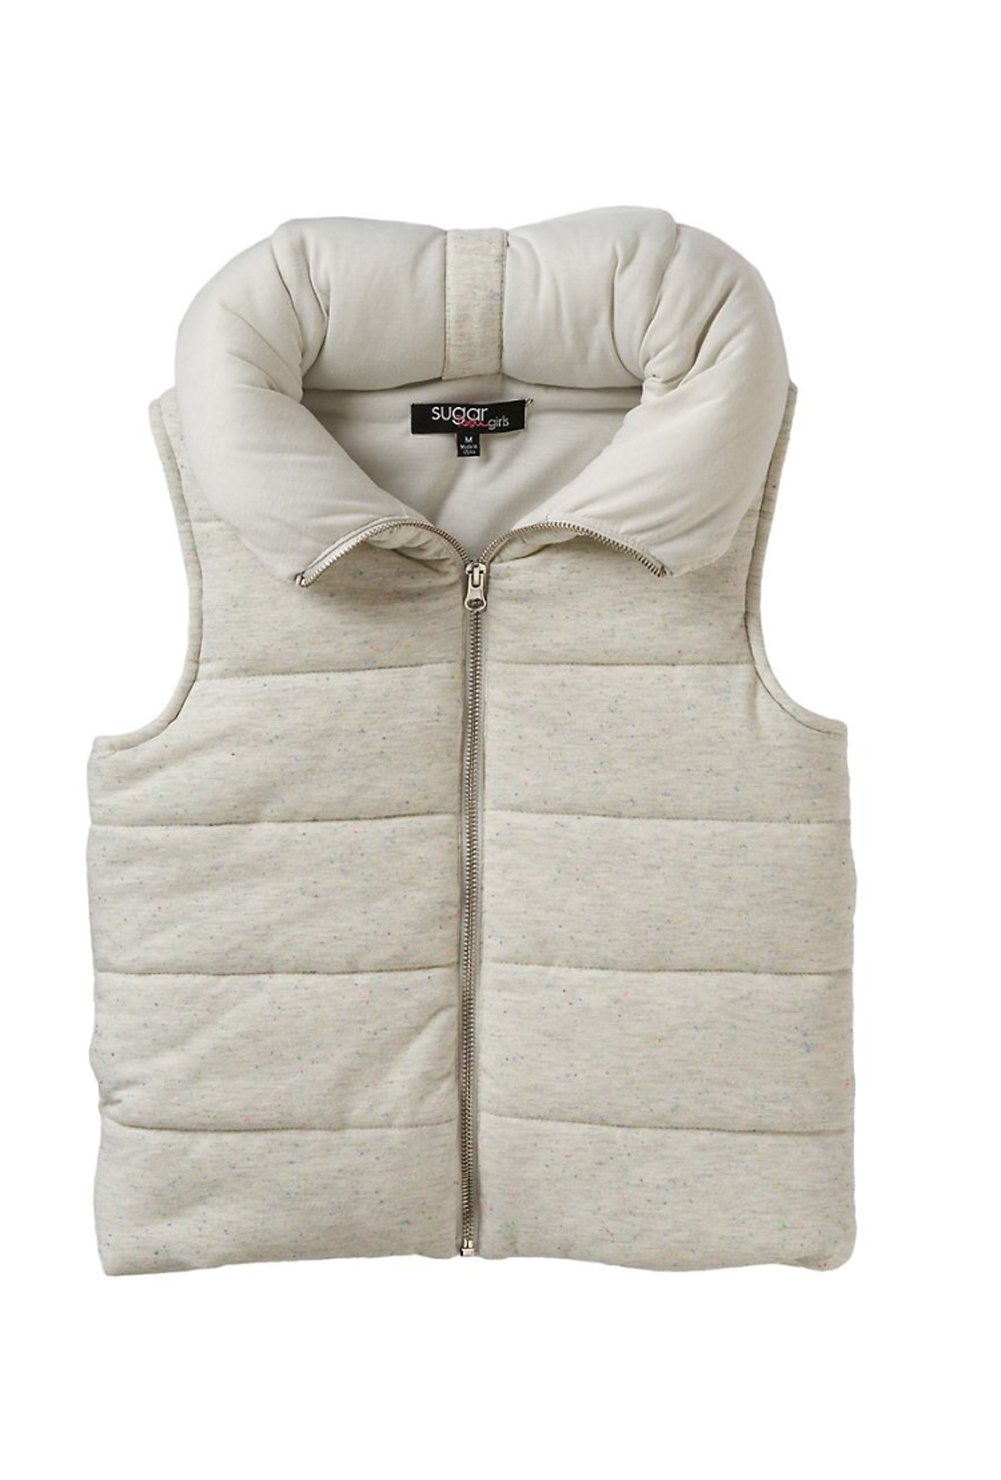 Sugar Rush Girls Speckled Hooded Puffer Vest (Large, Oatmeal Nep) by Sugar Rush (Image #2)